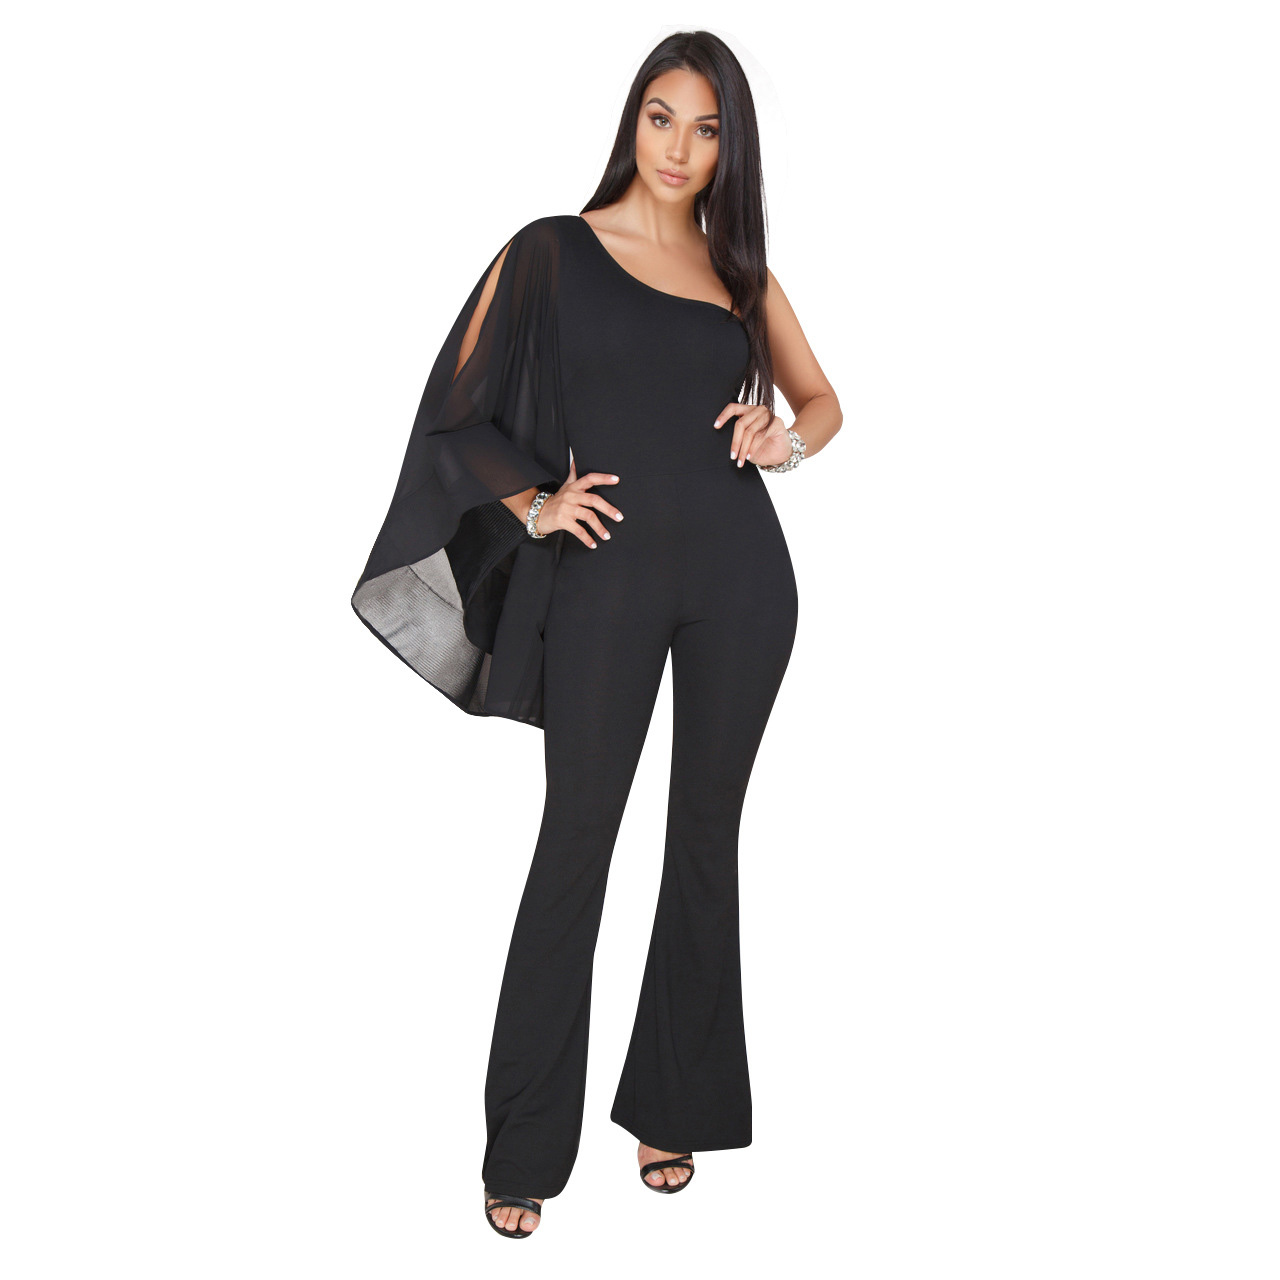 Summer One Shoulder Asymmetrical High Waist Jumpsuit Backless Elegant Boot Cut Jumpsuits Women Black Chiffon Party Rompers